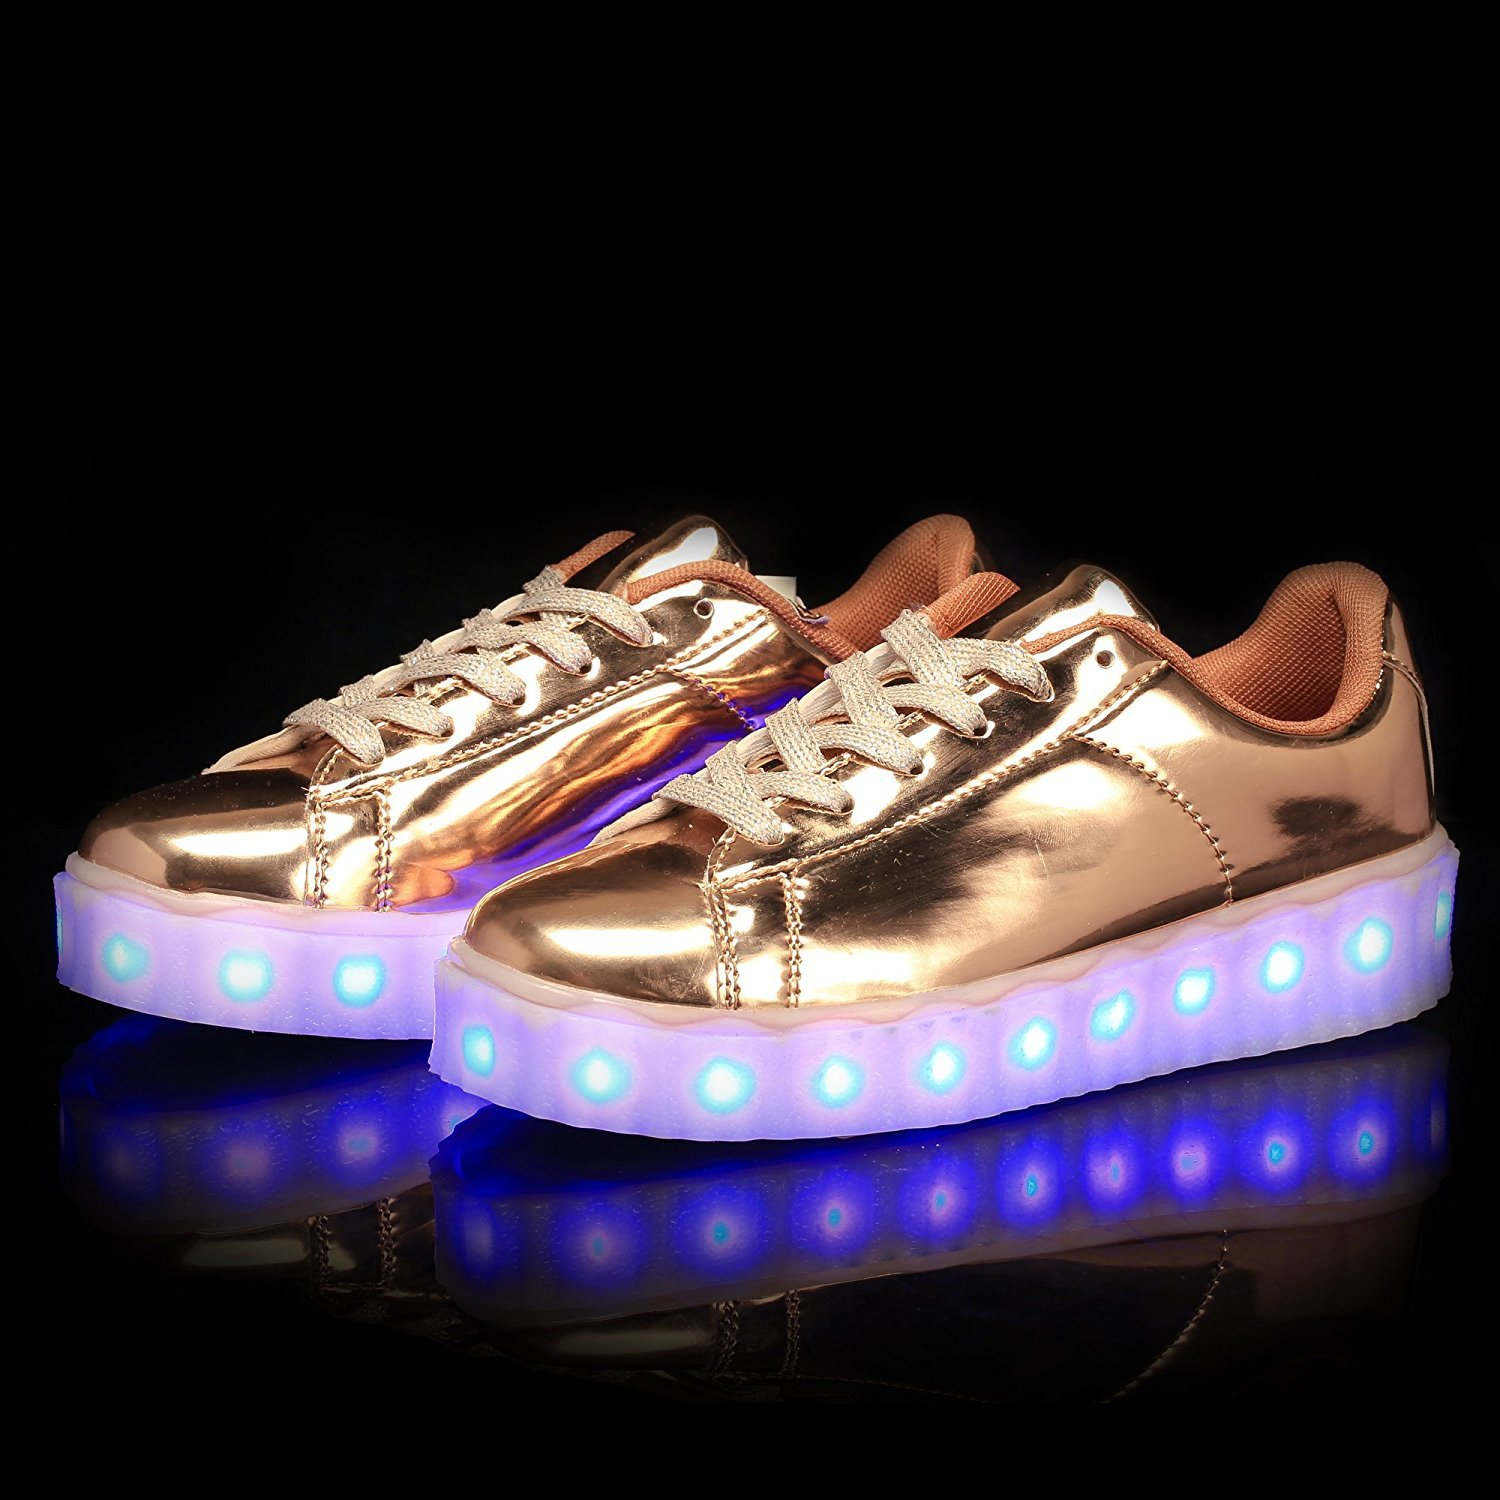 b7a94fe3e3098 A5uyzbayu Led Light Up Shoes Unisex USB 11 Colors Flashing Rechargeable  Sneakers